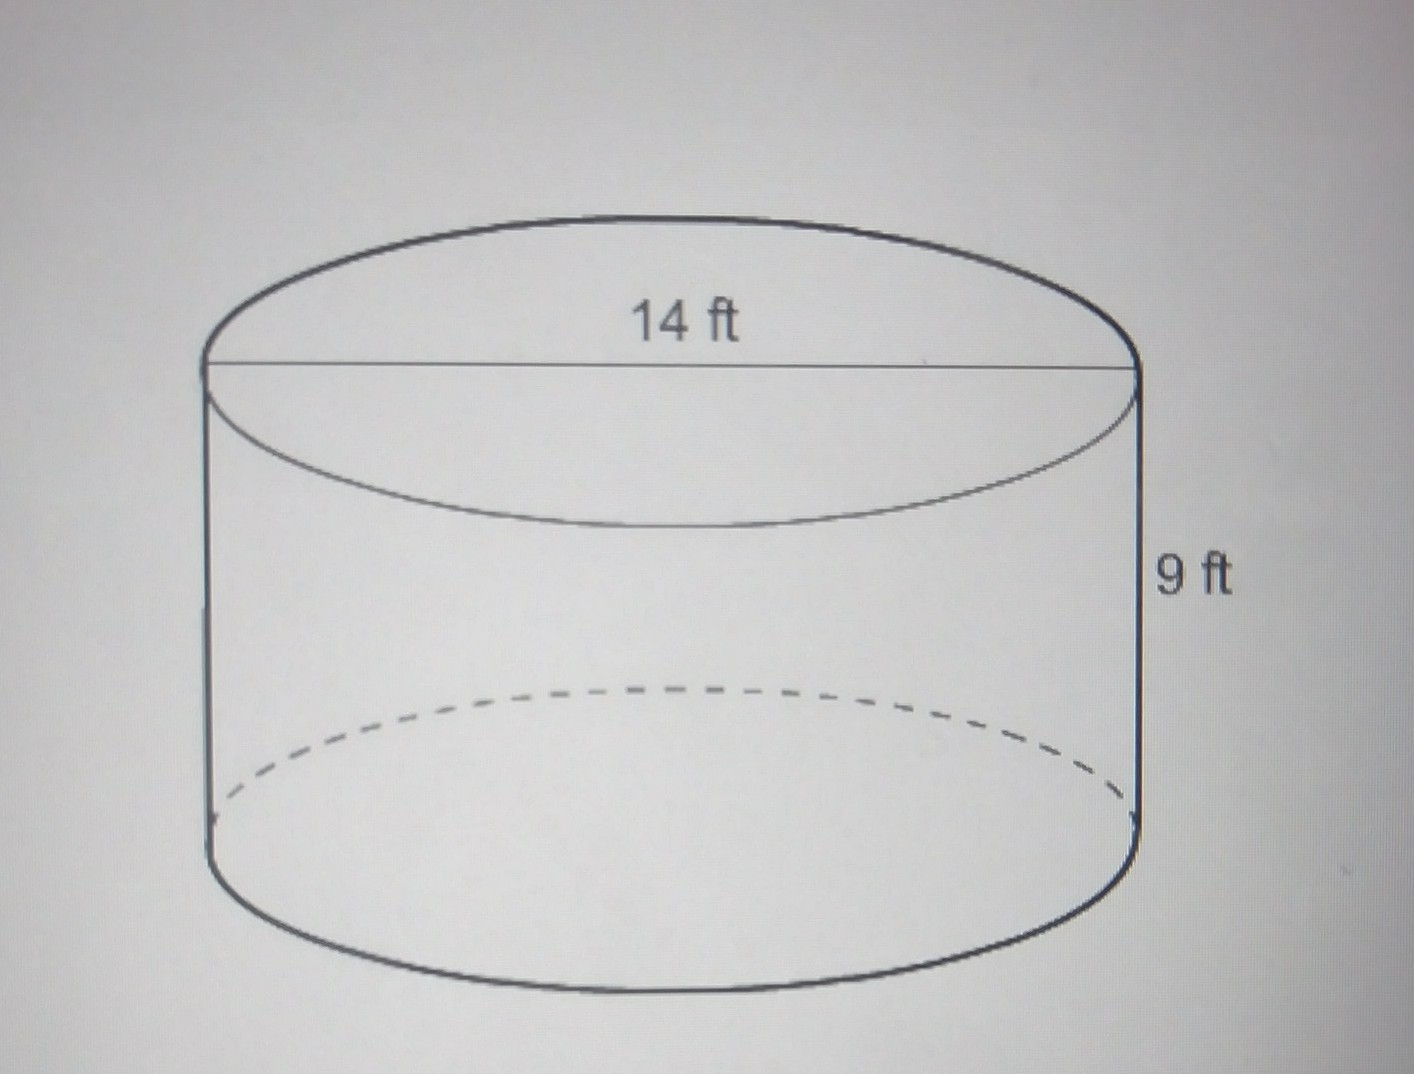 What Is The Surface Area Of The Cylinder 14ft Length 9ft Heighta 126pft B 273pft C 224pft D Brainly Com